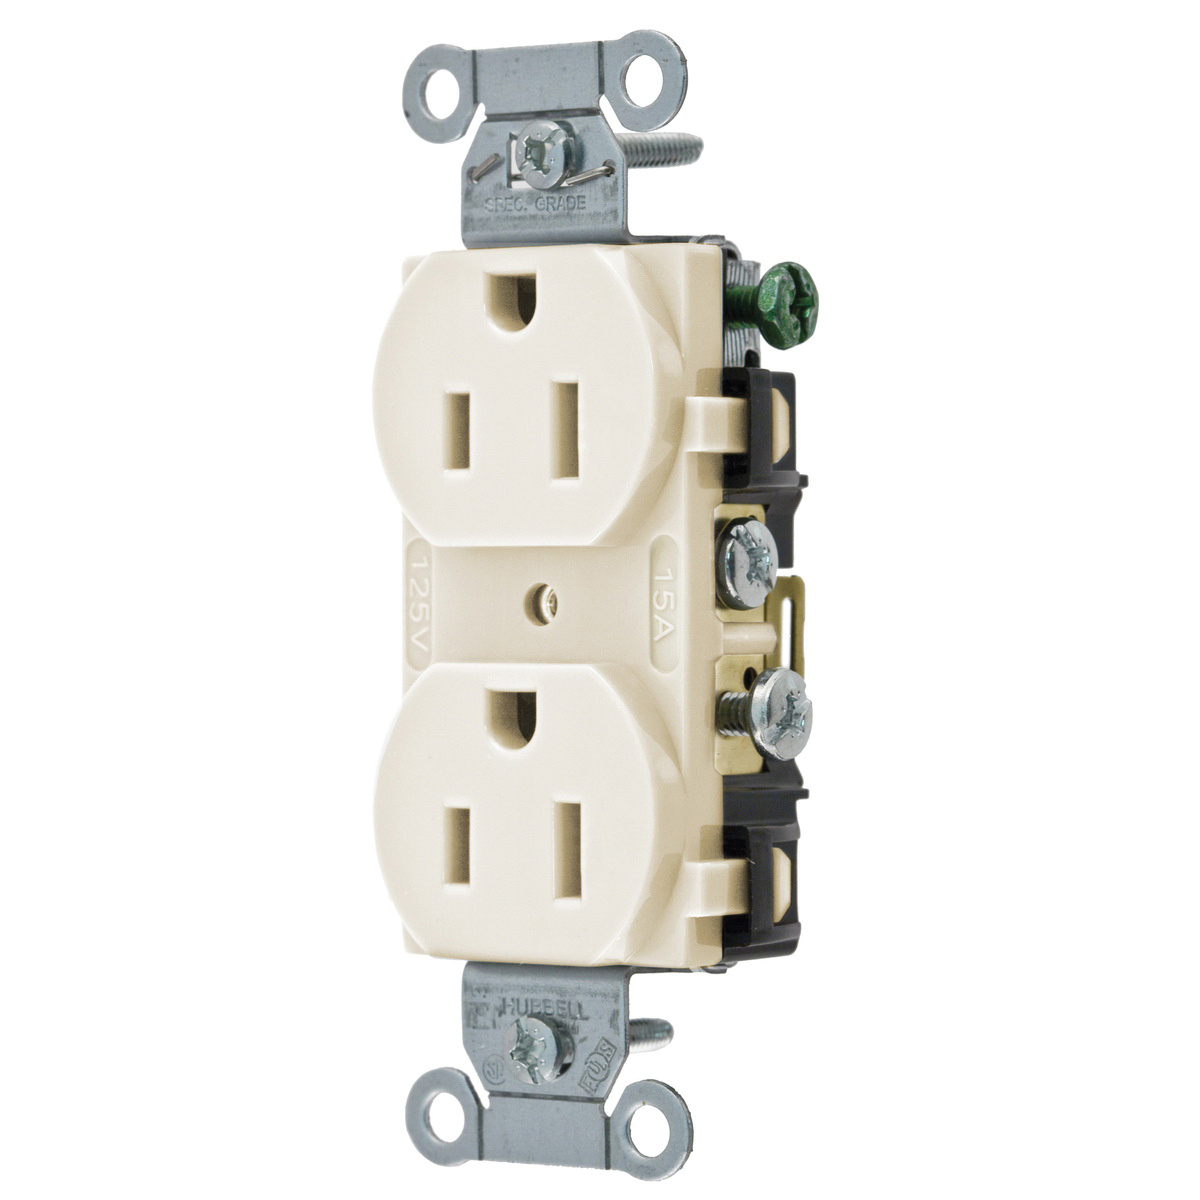 hight resolution of hubbell wiring cr15la commercial specification grade smooth face straight blade receptacle 2 pole 3 wire 125 volt 15 amp nema 5 15r light almond straight